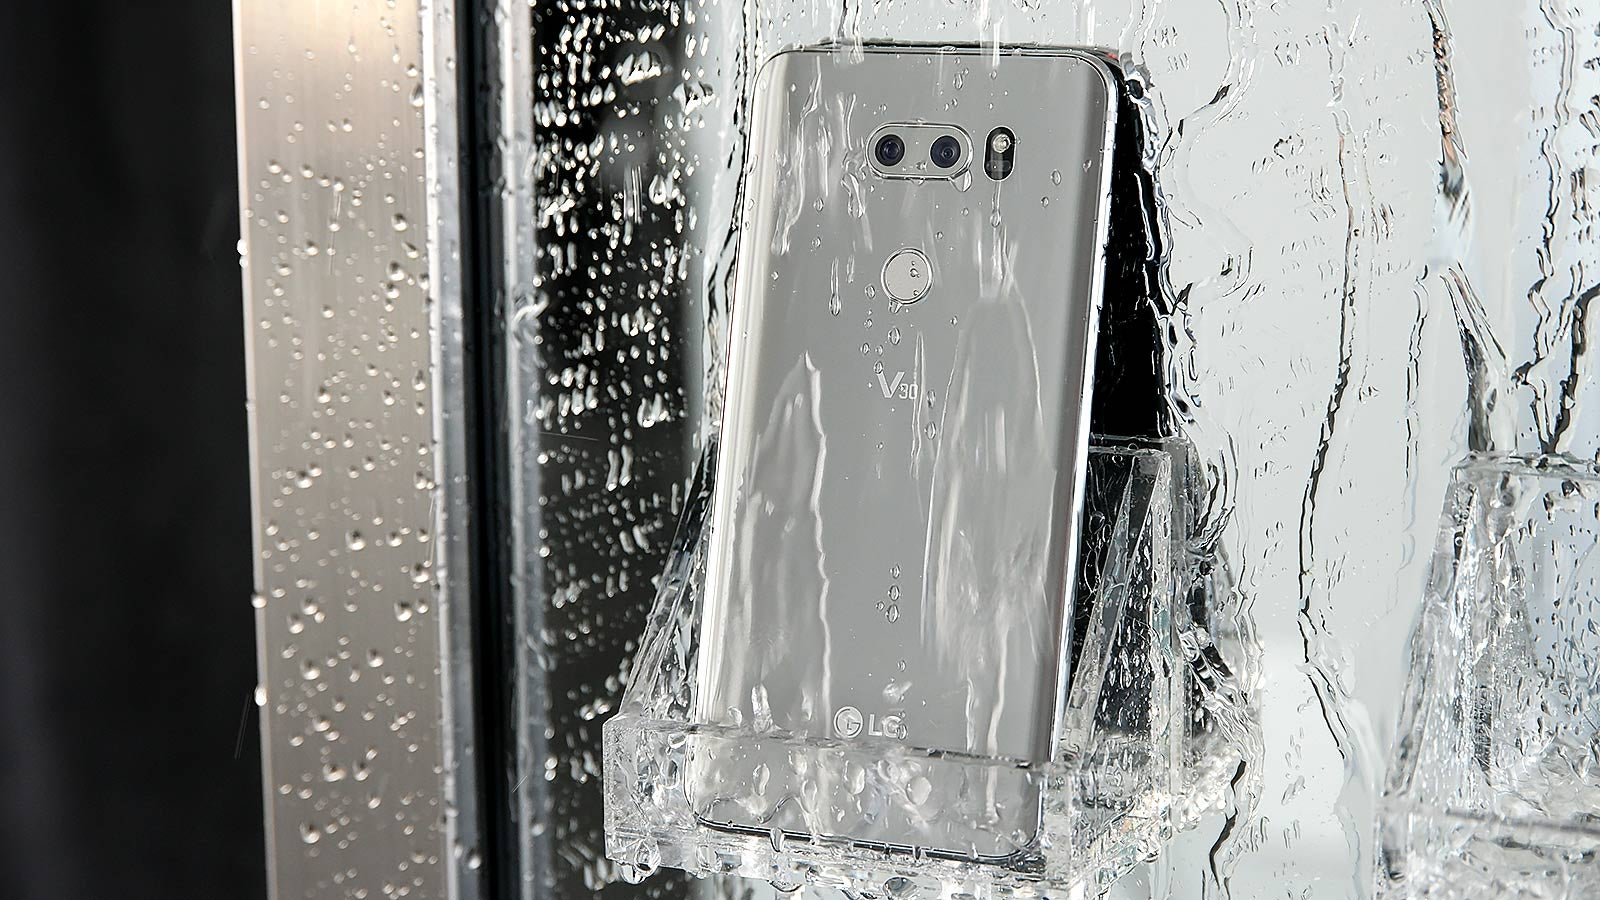 The LG V30 Sold Its Soul For Mainstream Appeal, But Hey, Its Camera